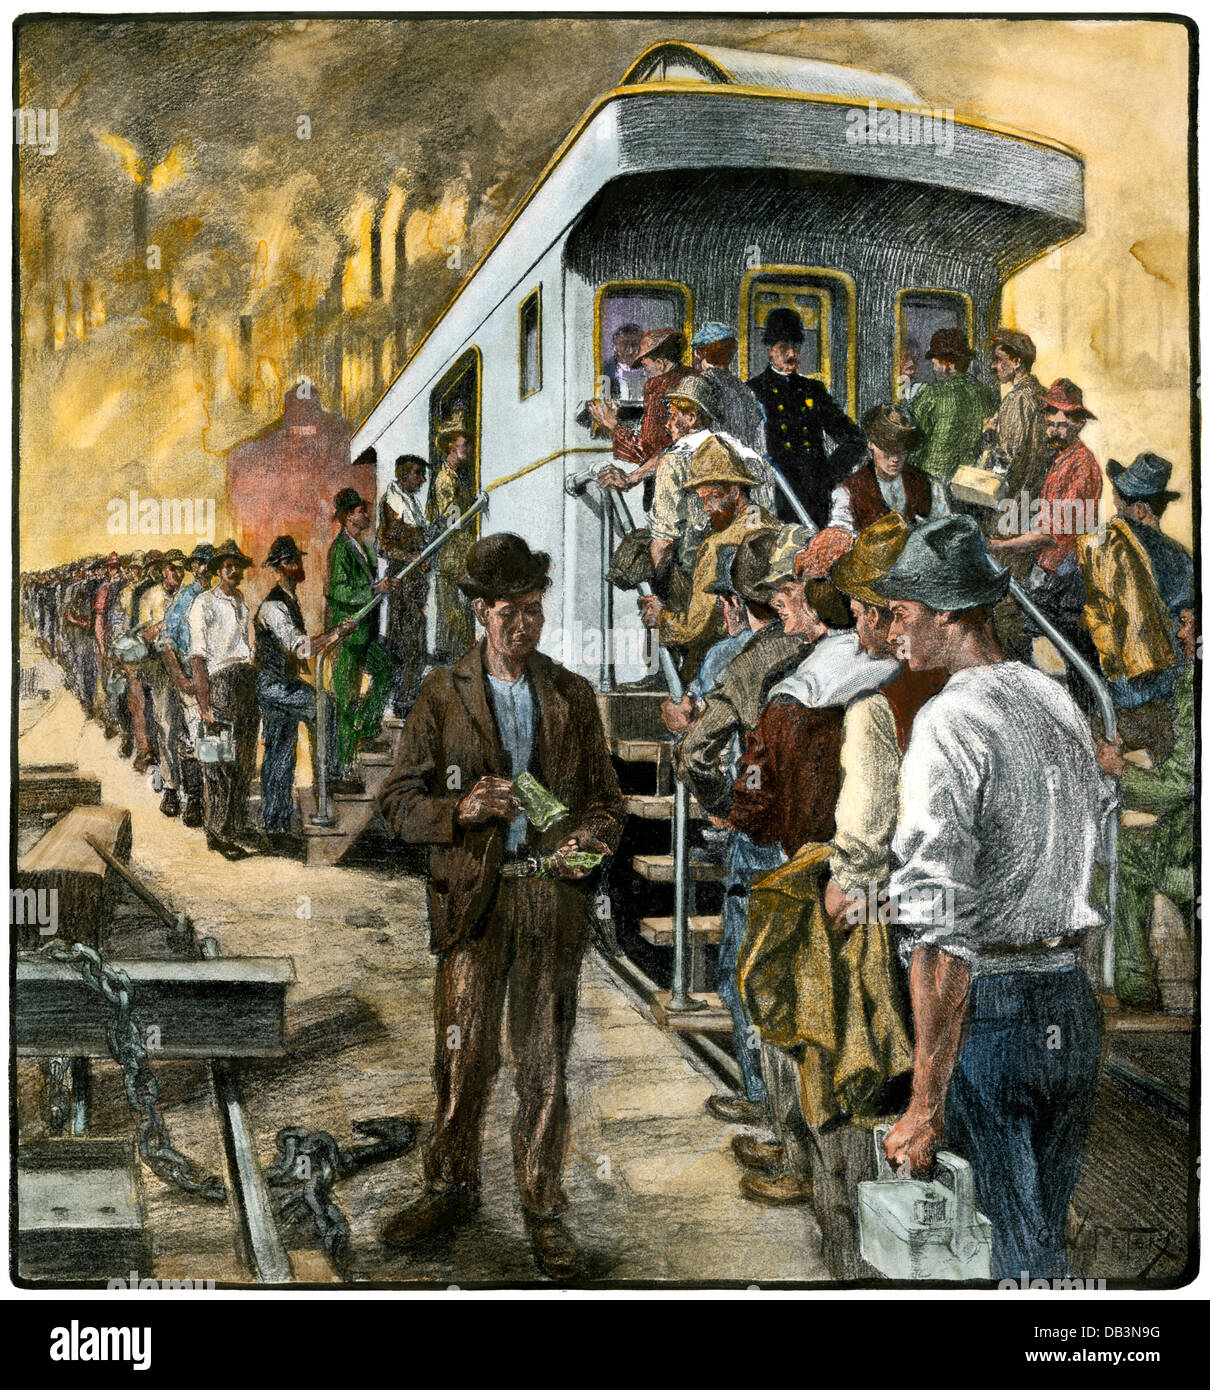 US Steel workers lined up at the pay-car at the Homestead Works, 1901.  Hand-colored halftone of an illustration - Stock Image